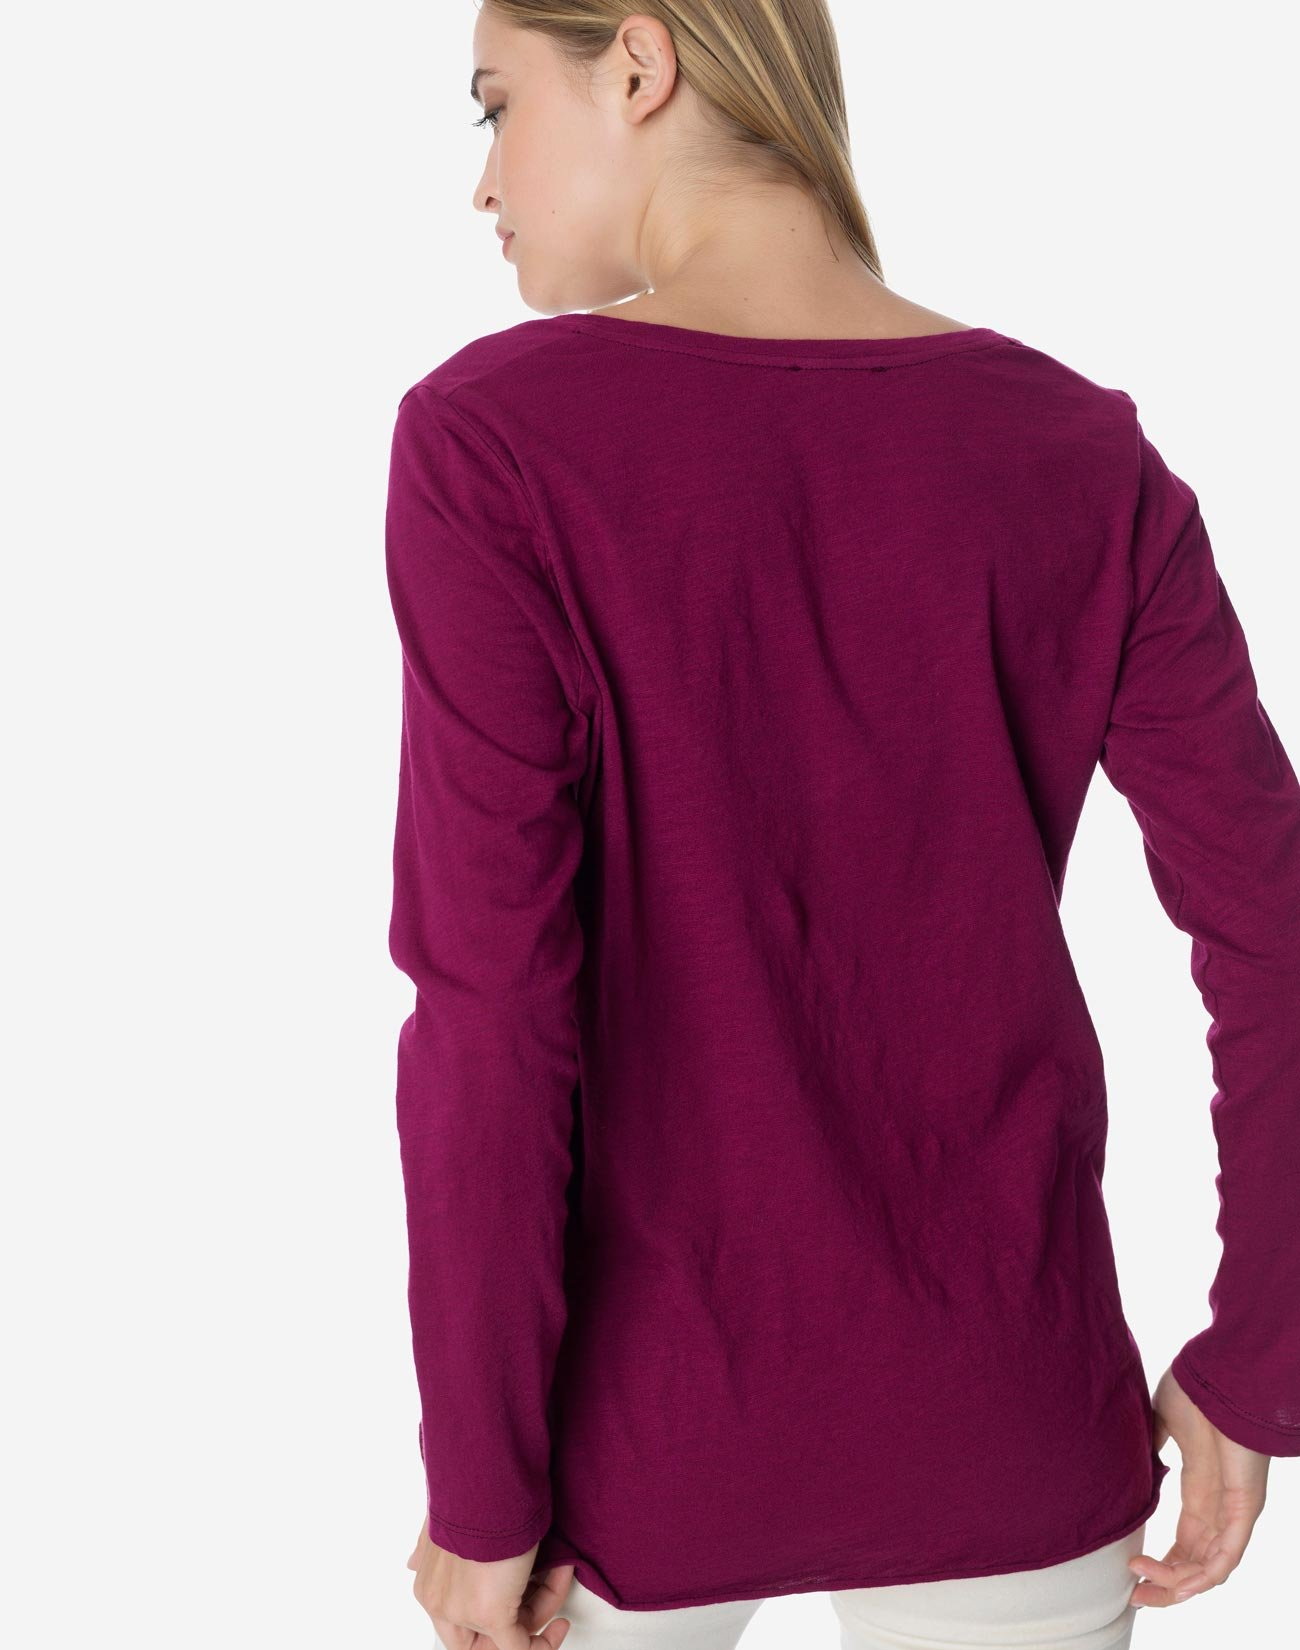 Basic longsleeve top